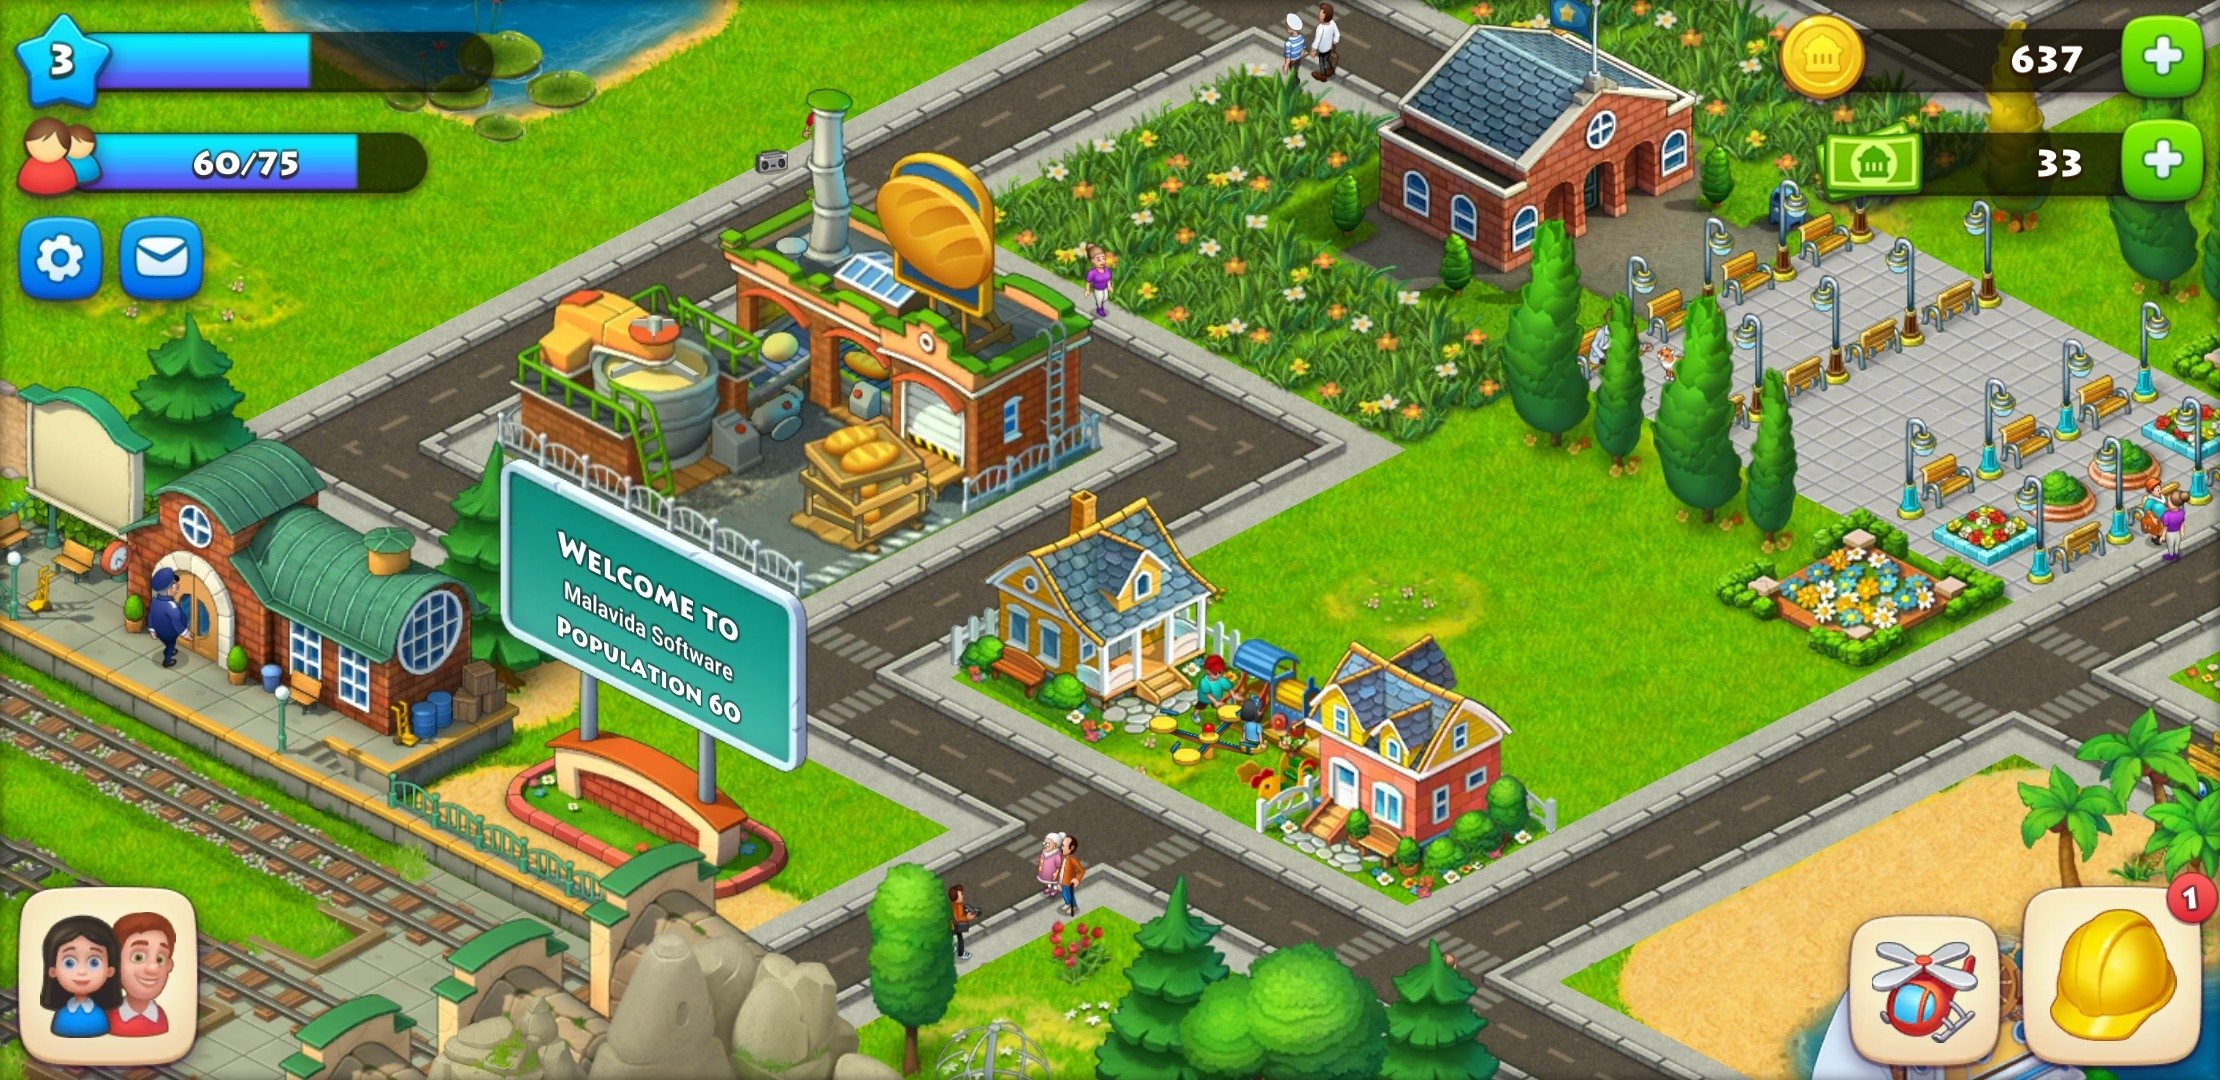 Township Android image 5